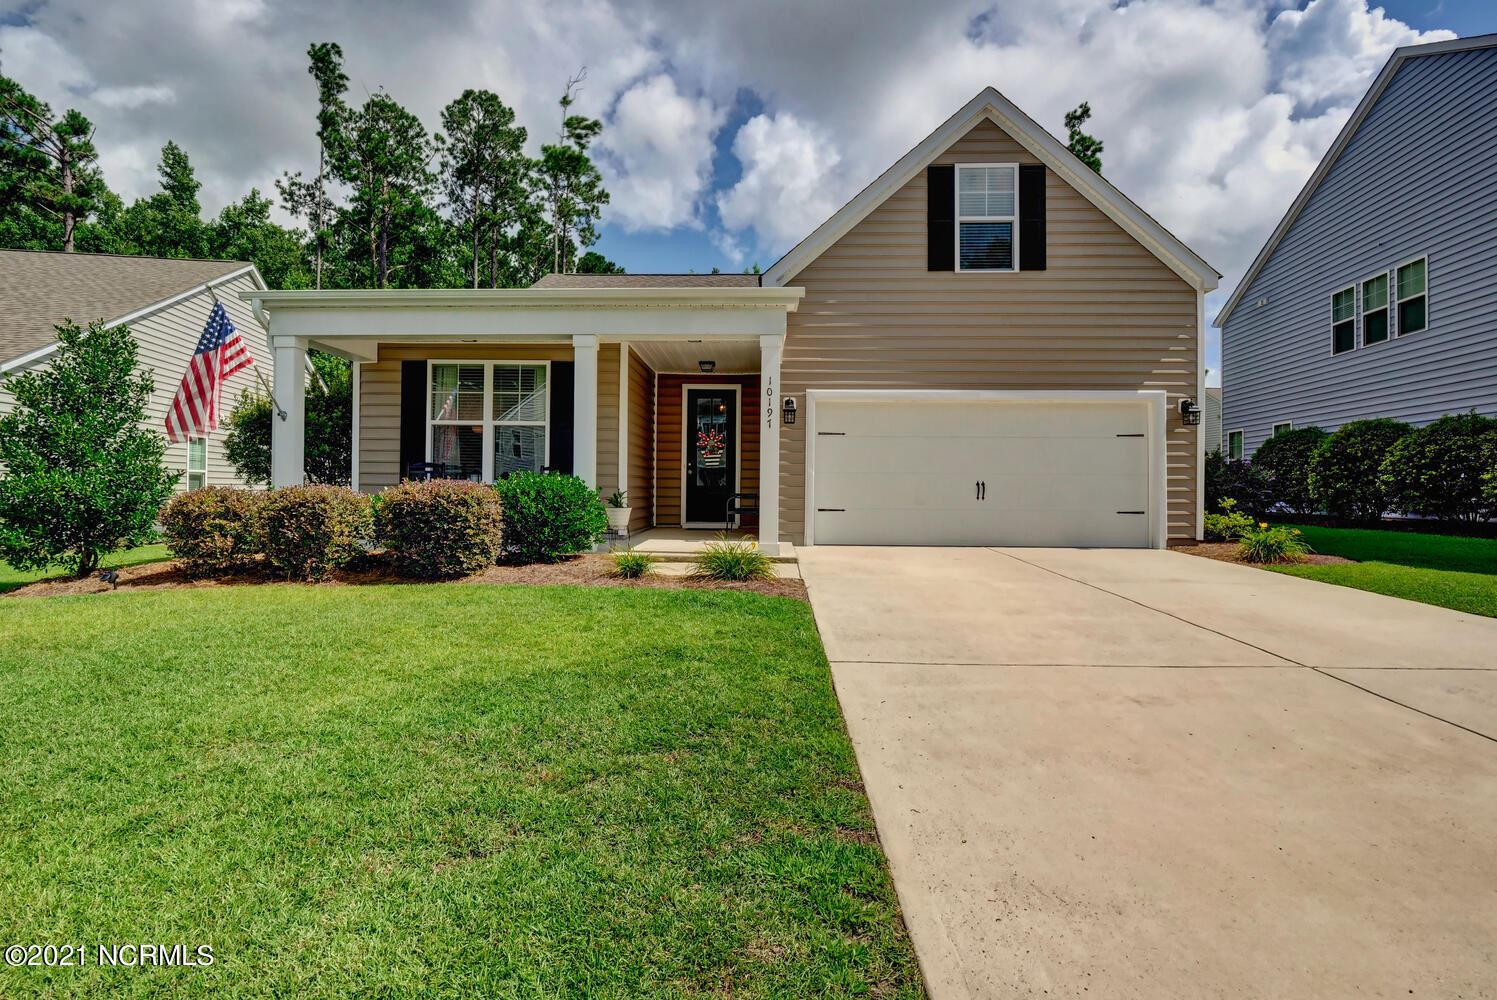 Photo for 10197 Hawkeswater Boulevard, Leland, NC 28451 (MLS # 100284050)